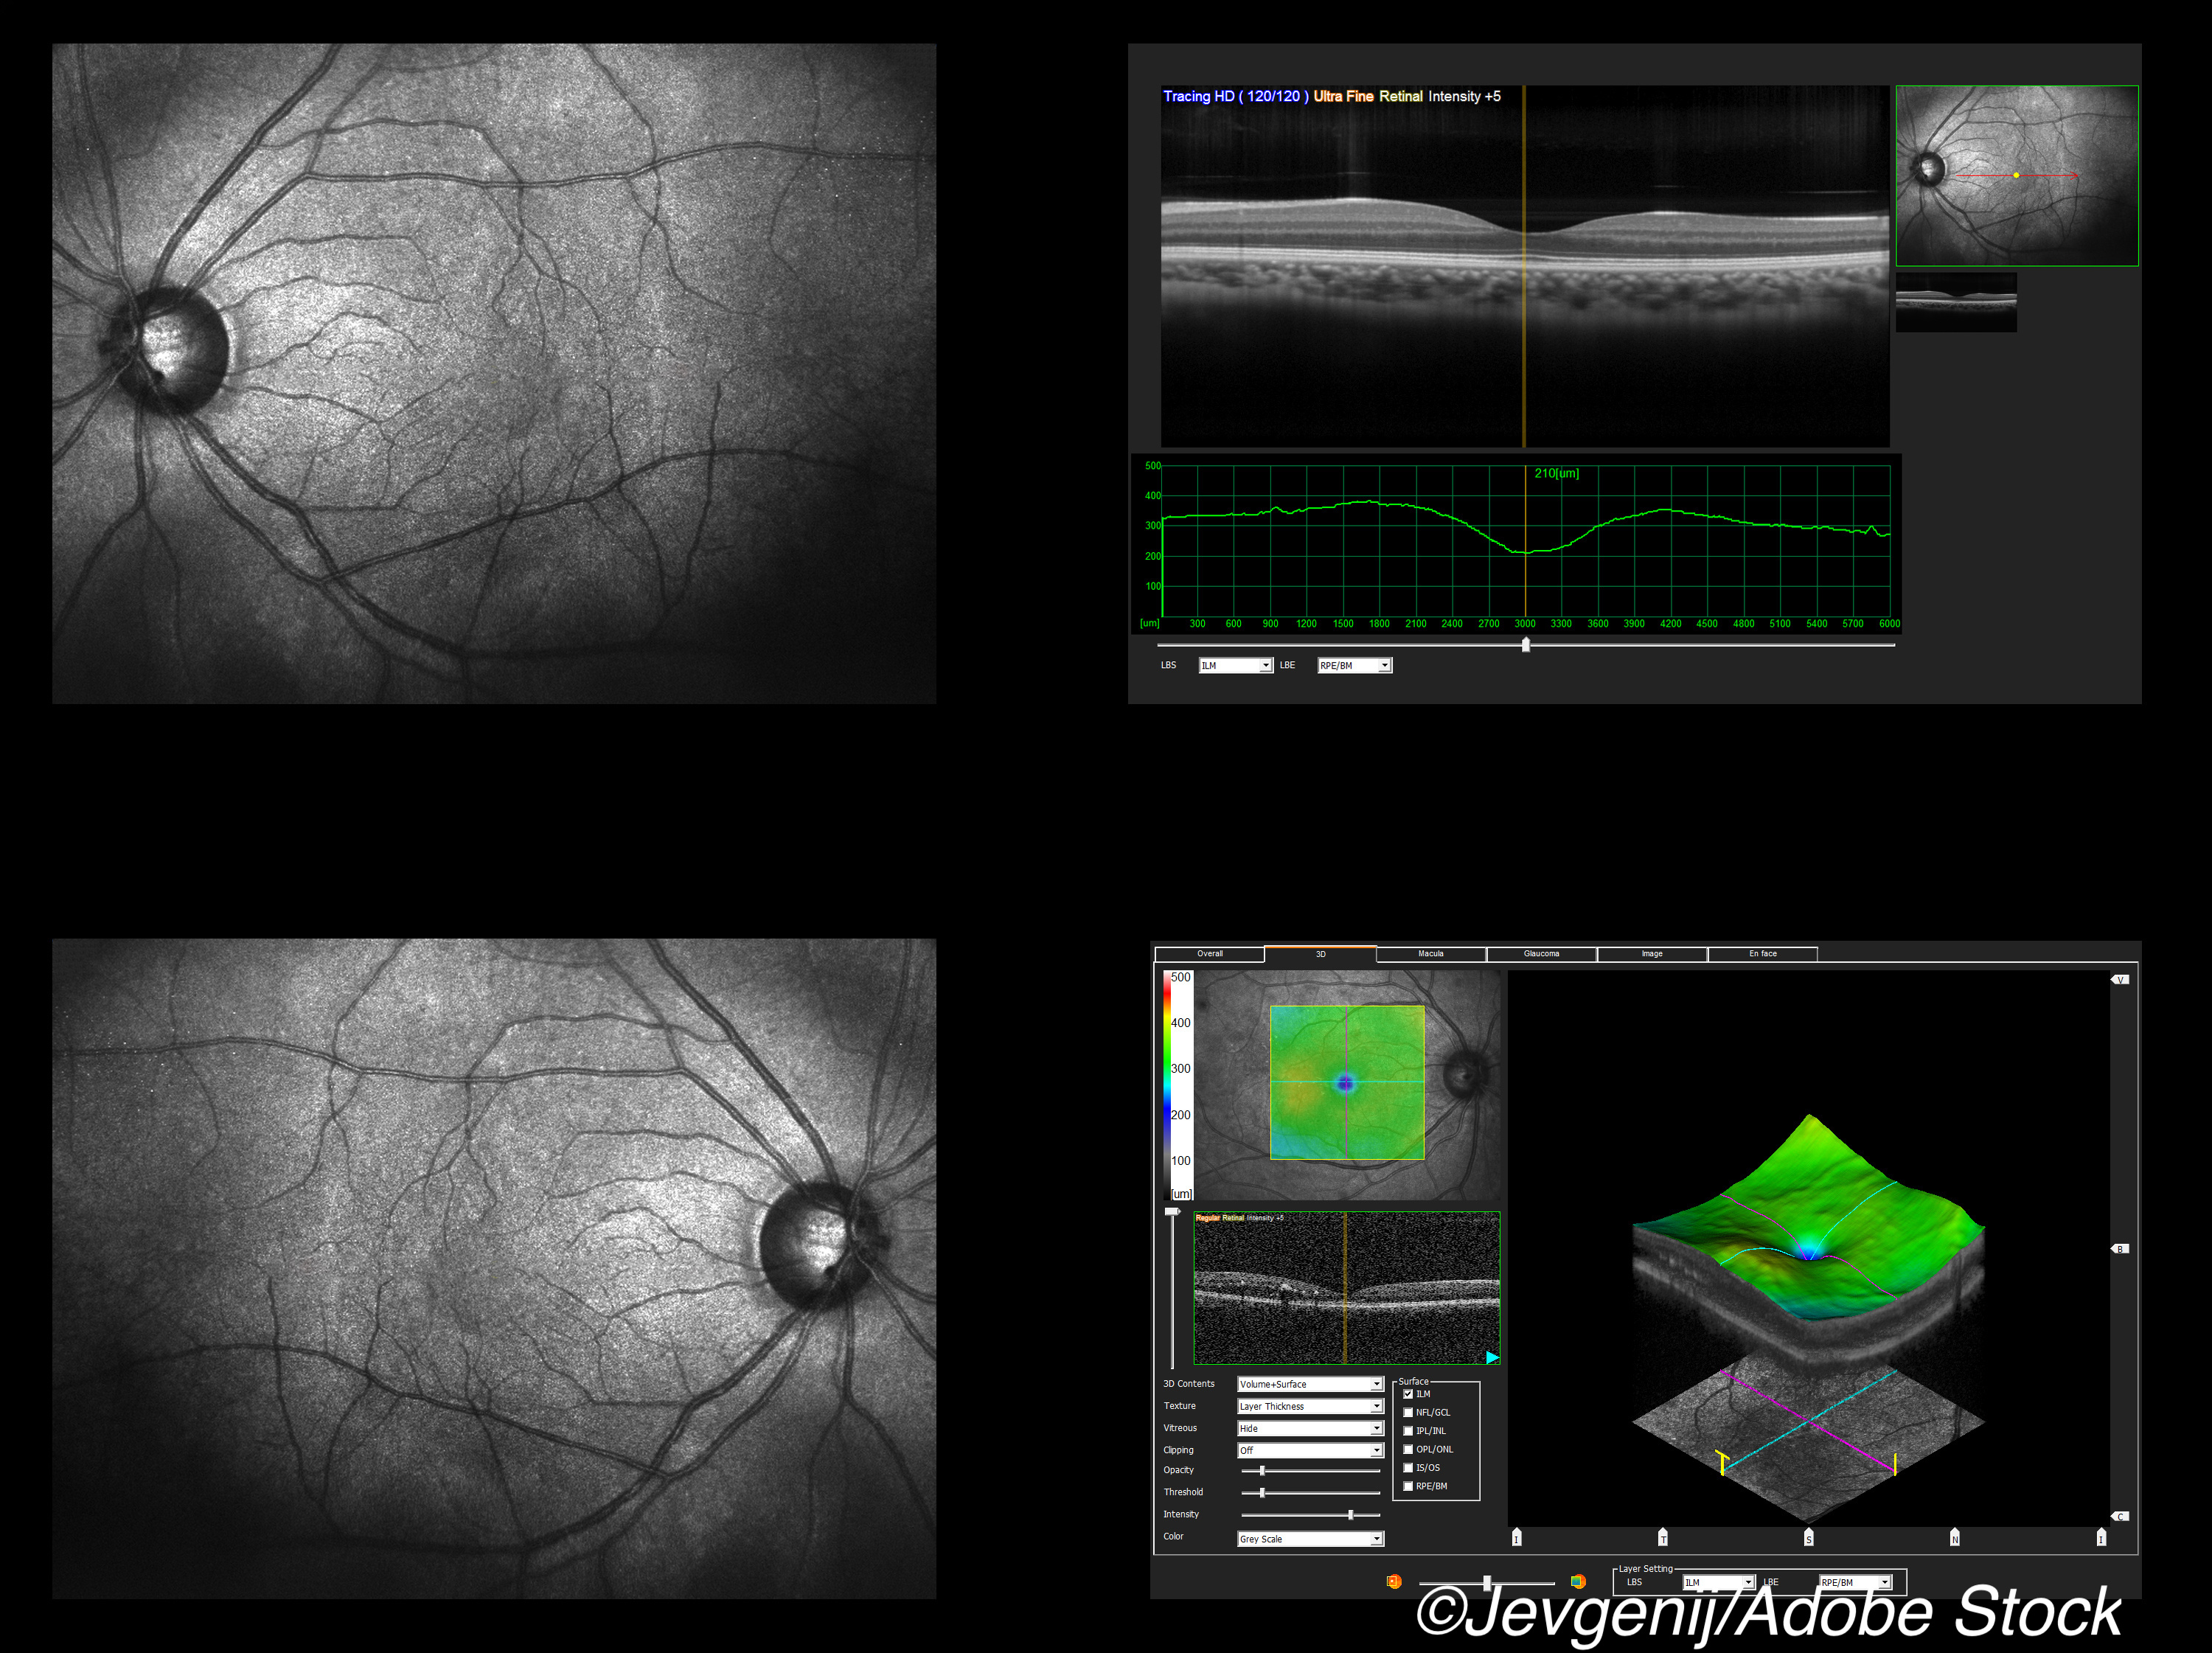 Detecting Asymptomatic Optic Nerve Lesions in CIS